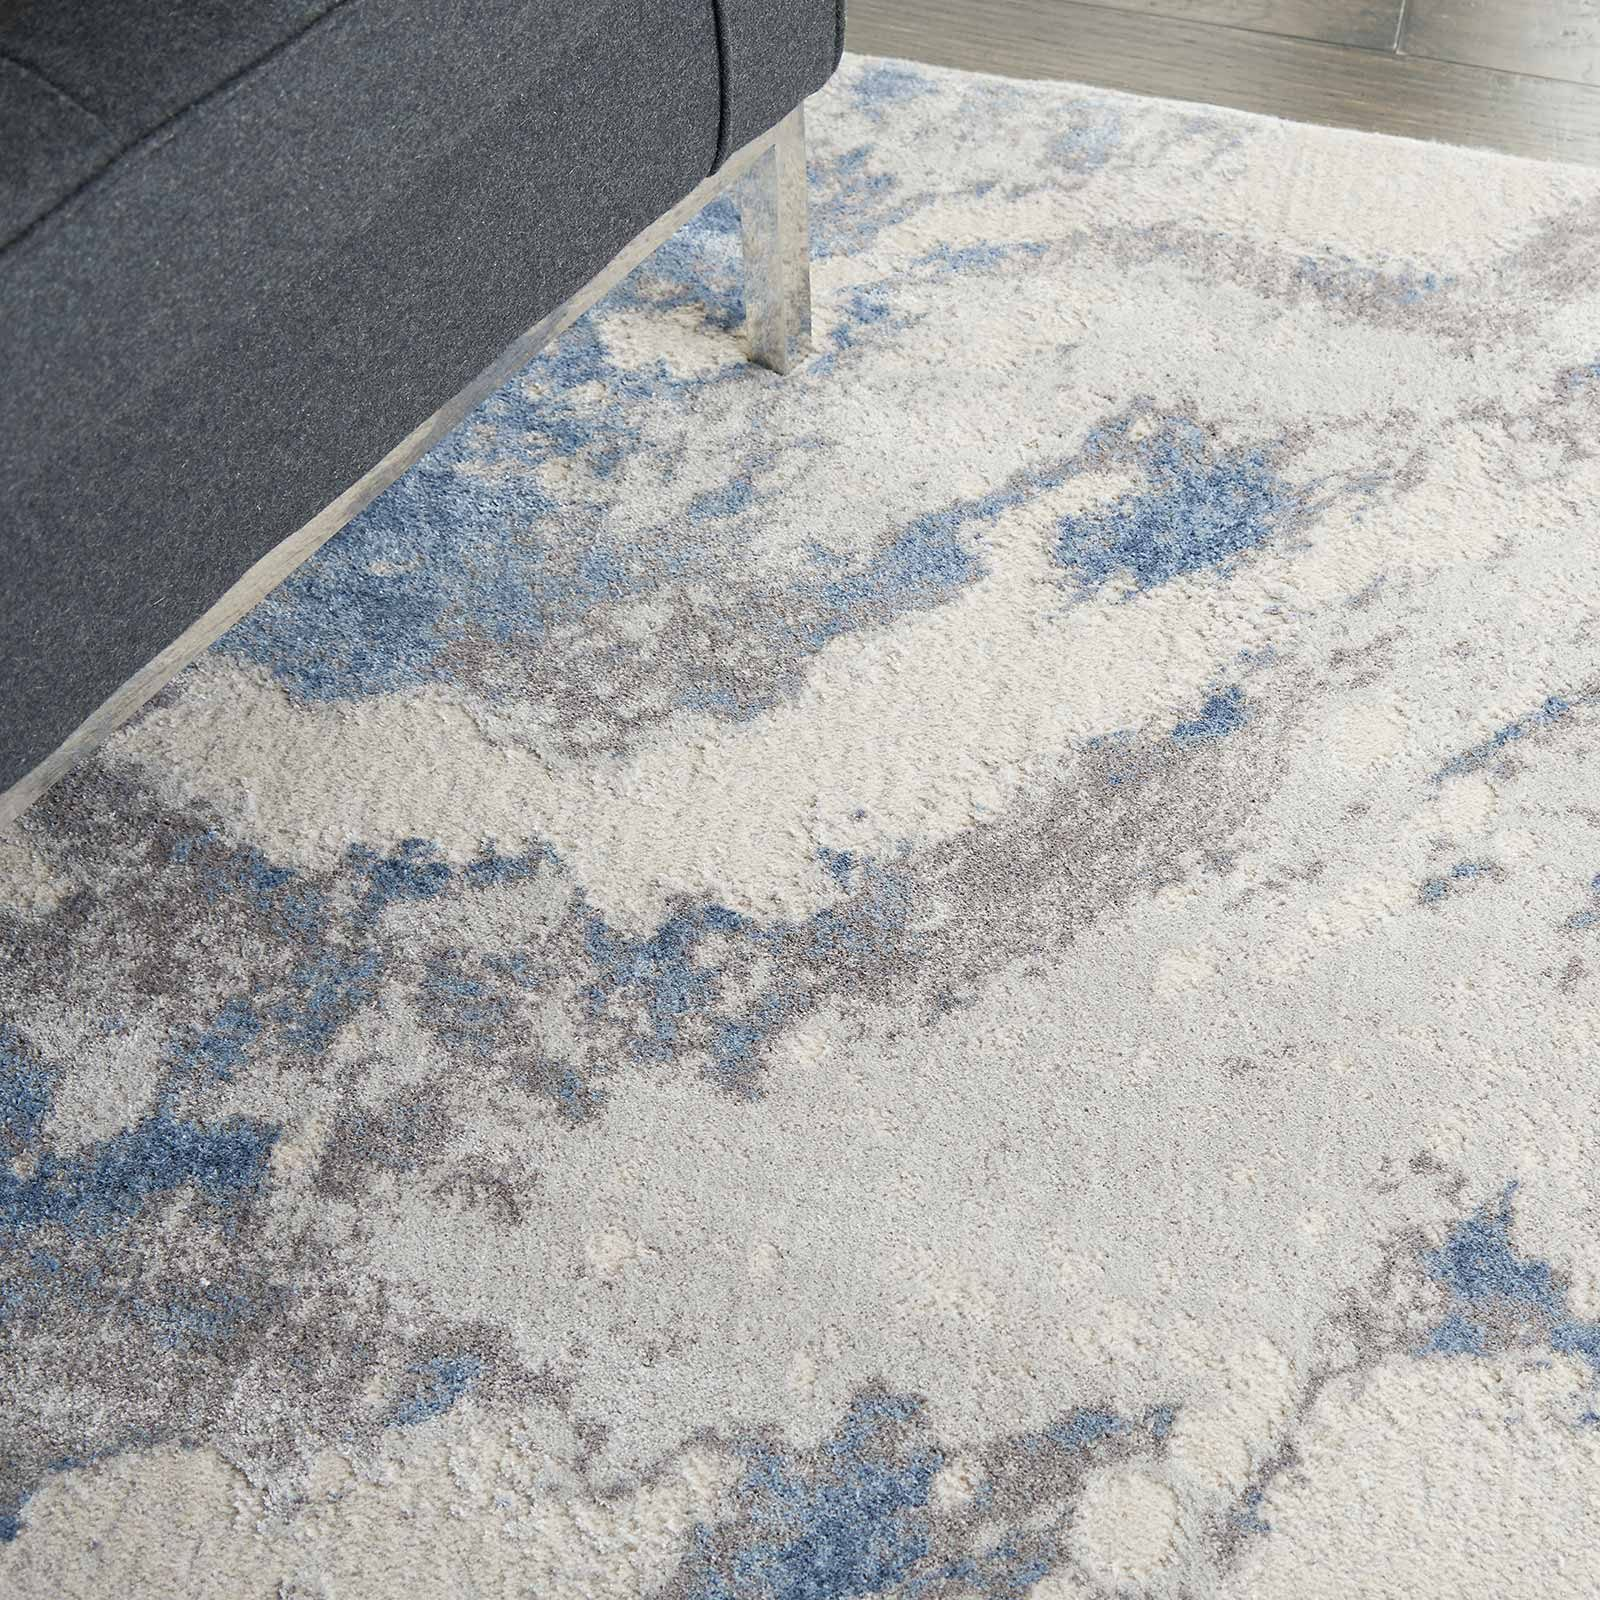 Nourison rug Silky Textures SLY03 BLUE IVORY GREY 5x7 099446710086 interior 2 C